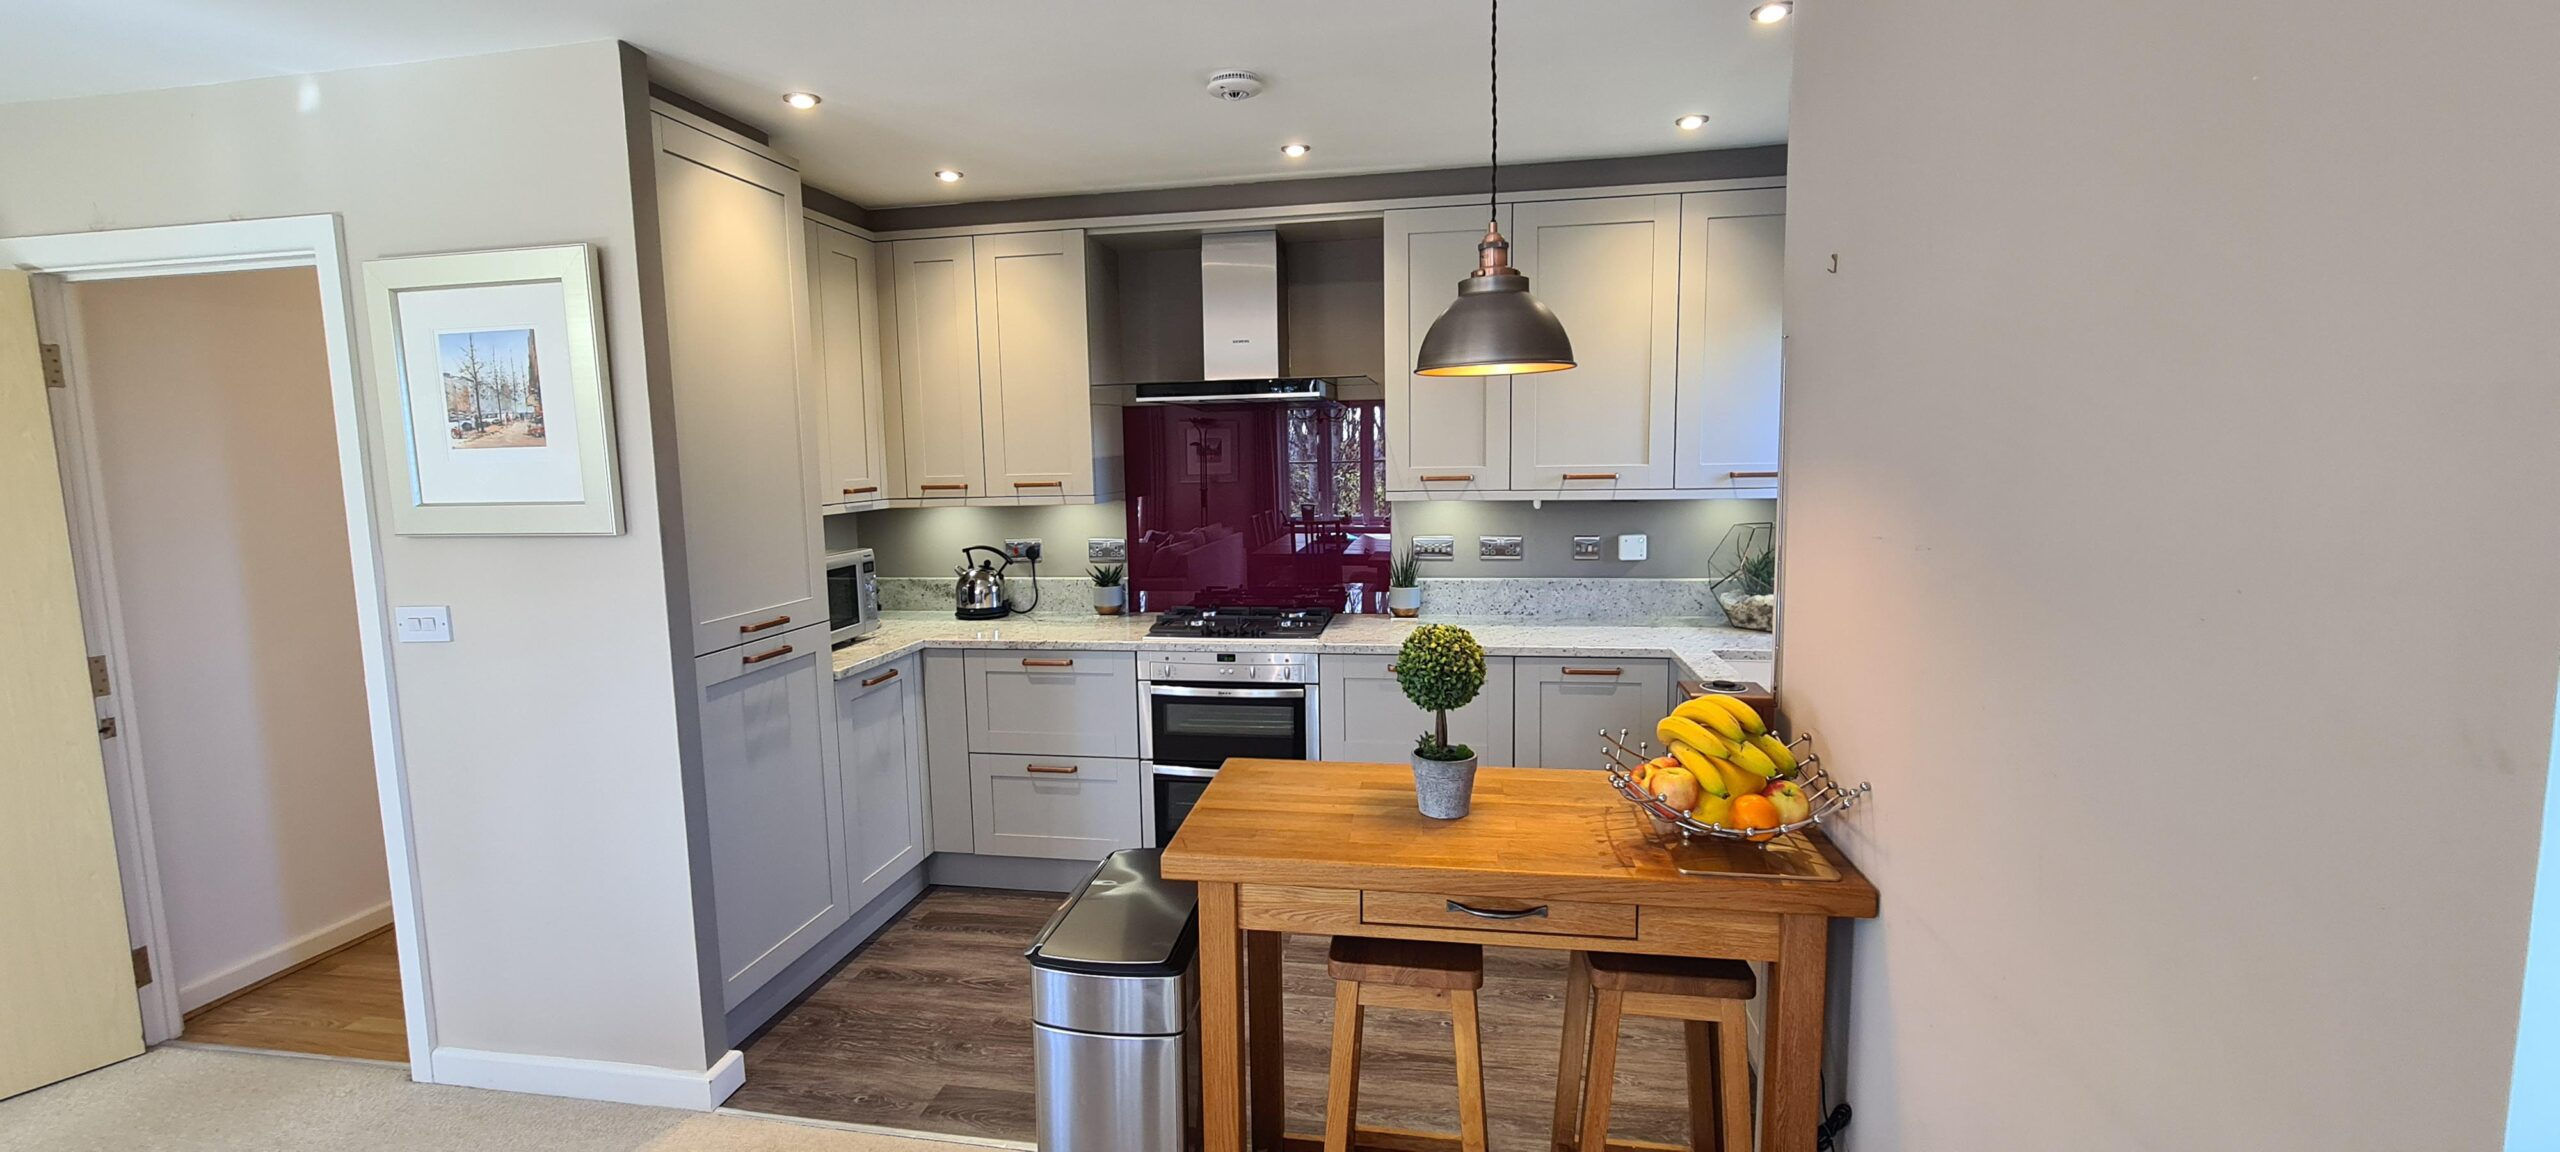 Image of a classic kitchen design that maximises the available kitchen space.